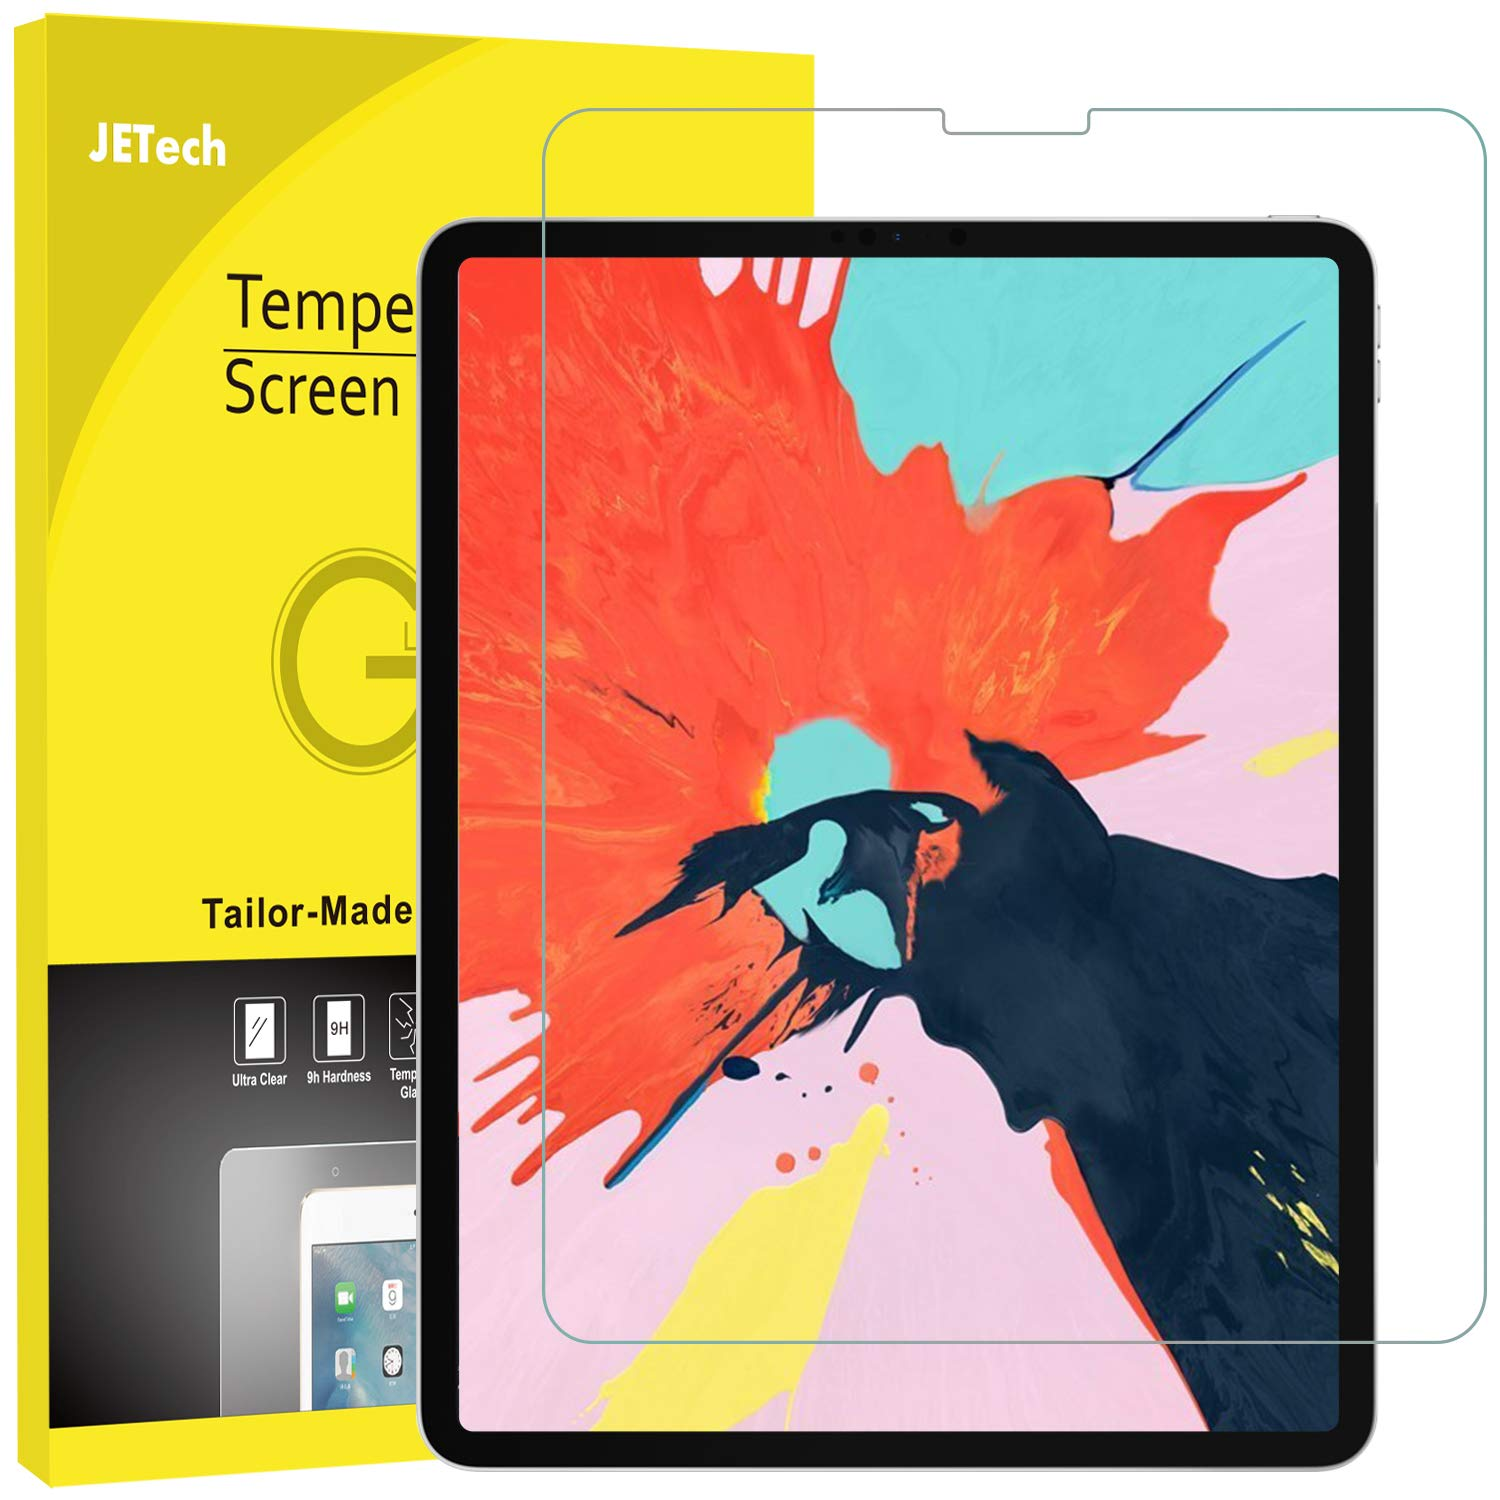 JETech Screen Protector for the 12.9-inch iPad Pro